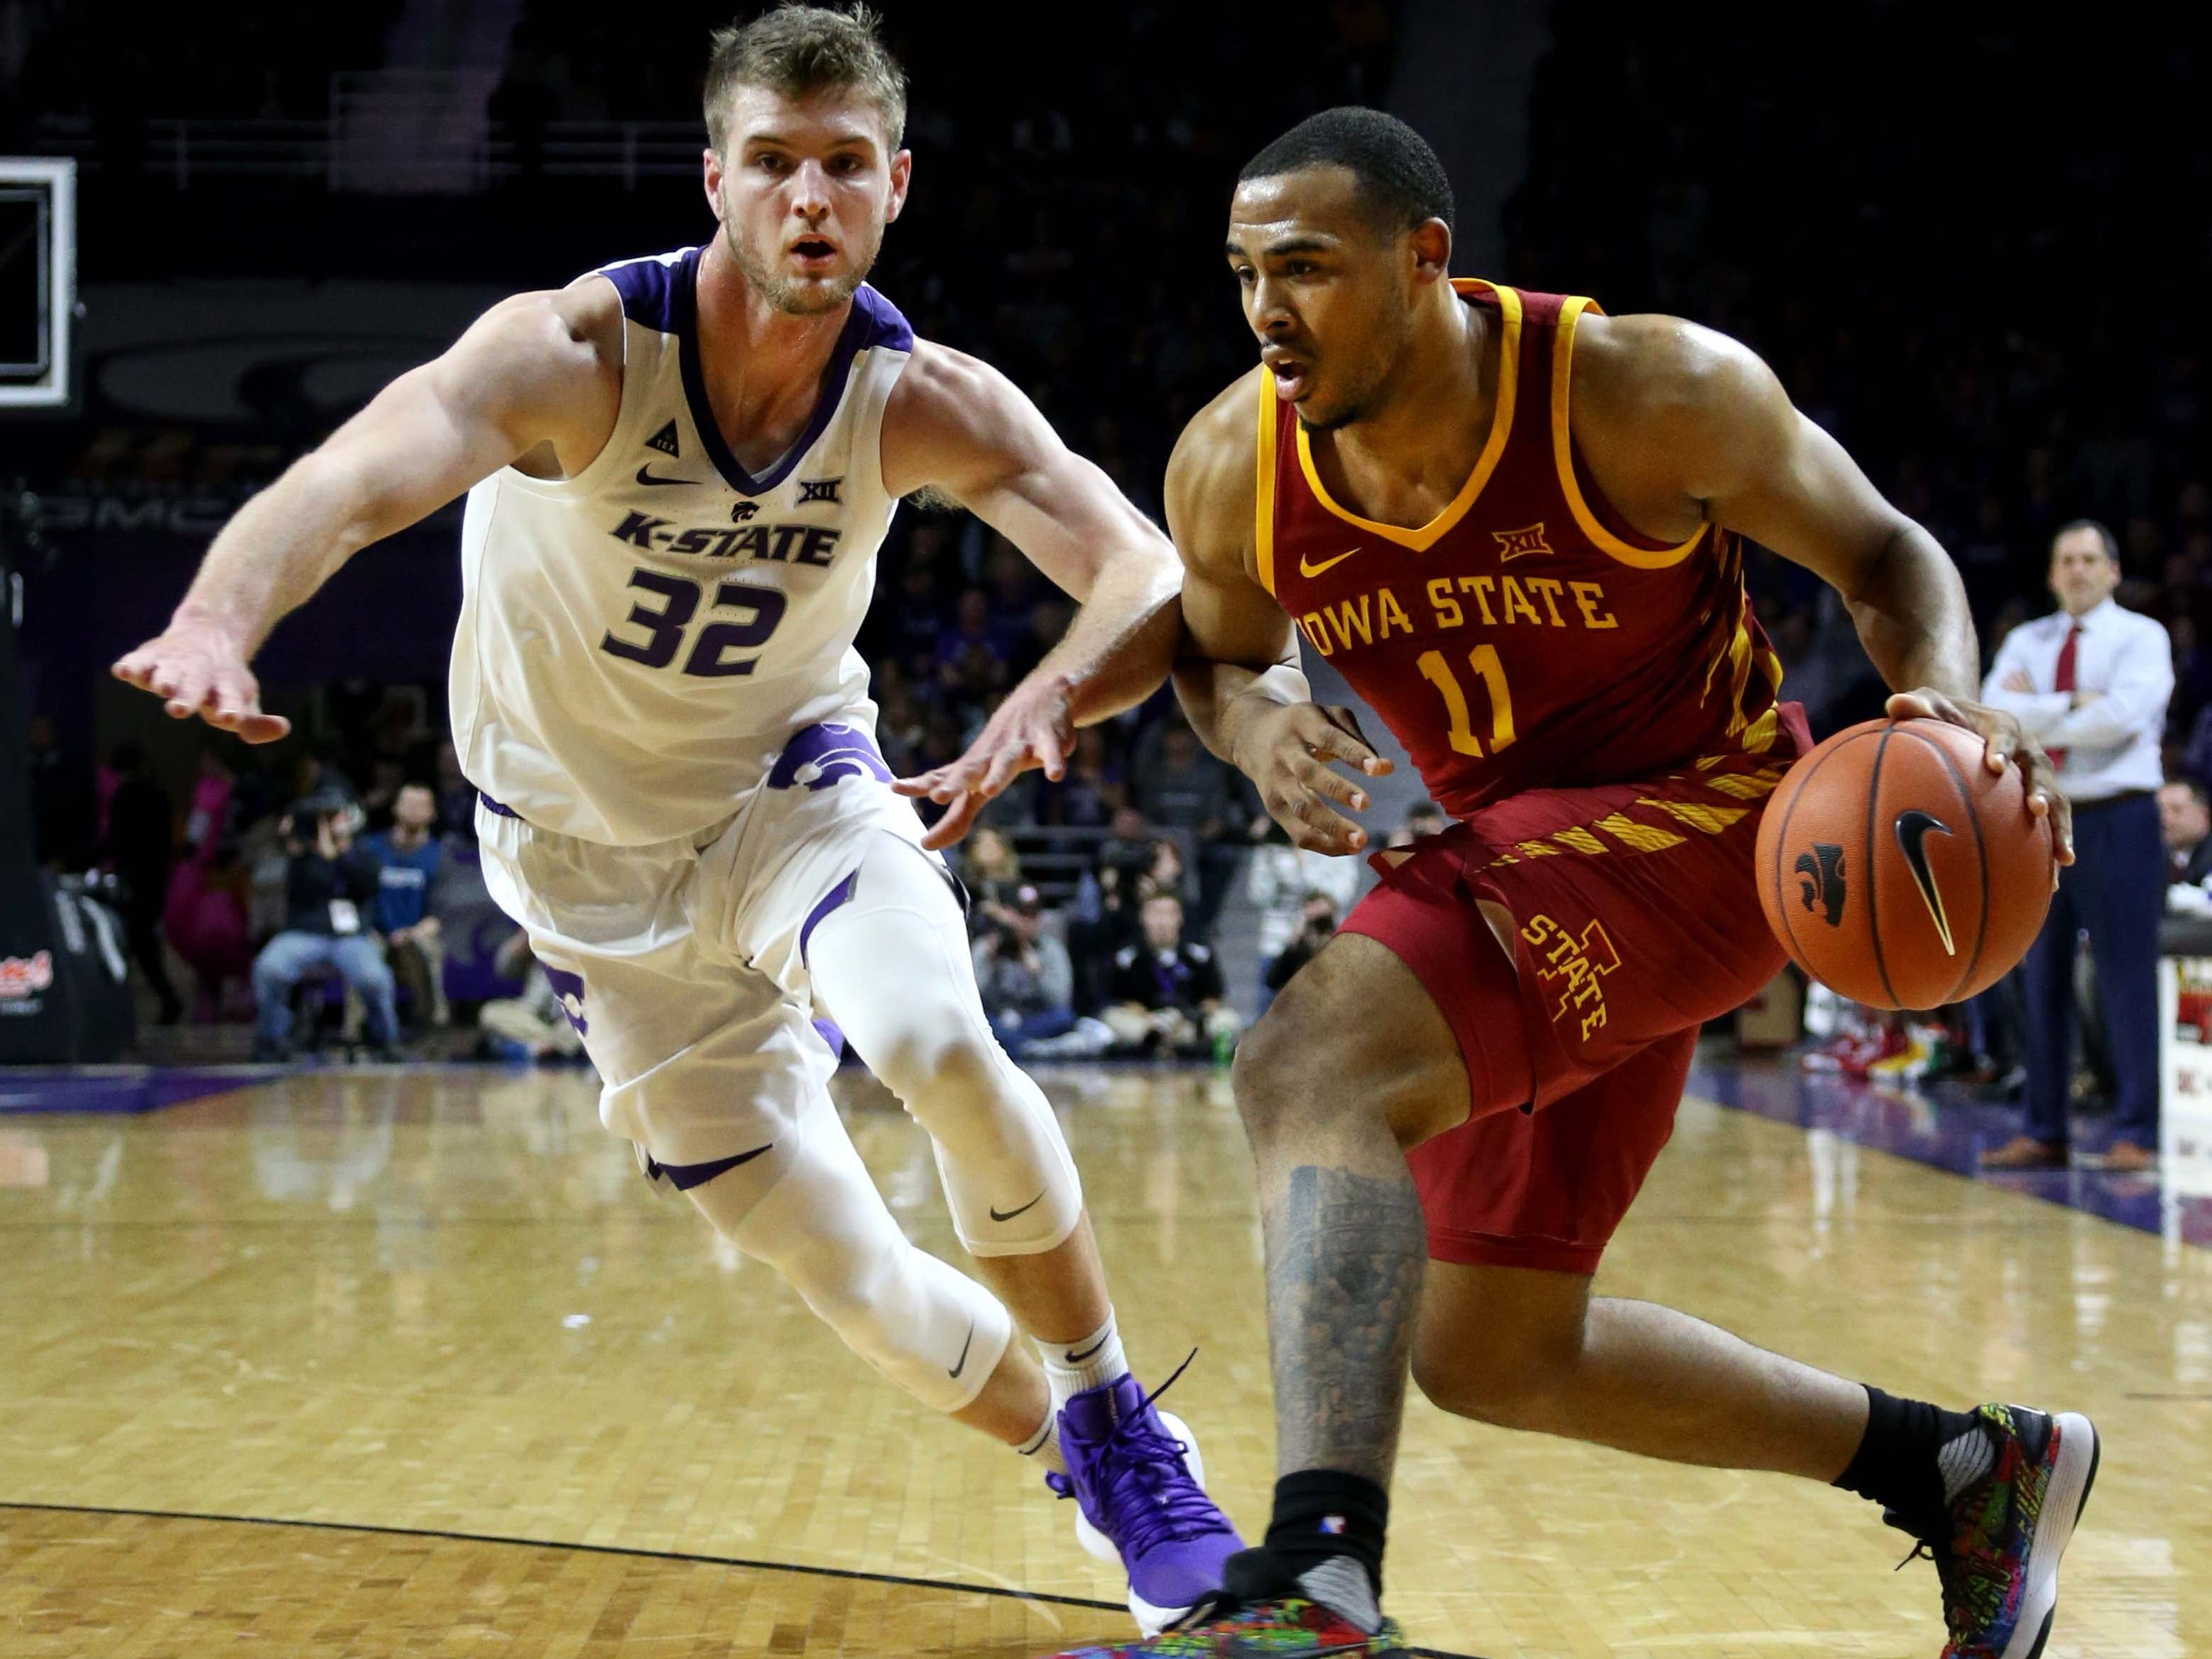 Feb 16, 2019; Manhattan, KS, USA; Iowa State Cyclones guard Talen Horton-Tucker (11) is guarded by Kansas State Wildcats forward Dean Wade (32) during the first half at Bramlage Coliseum.